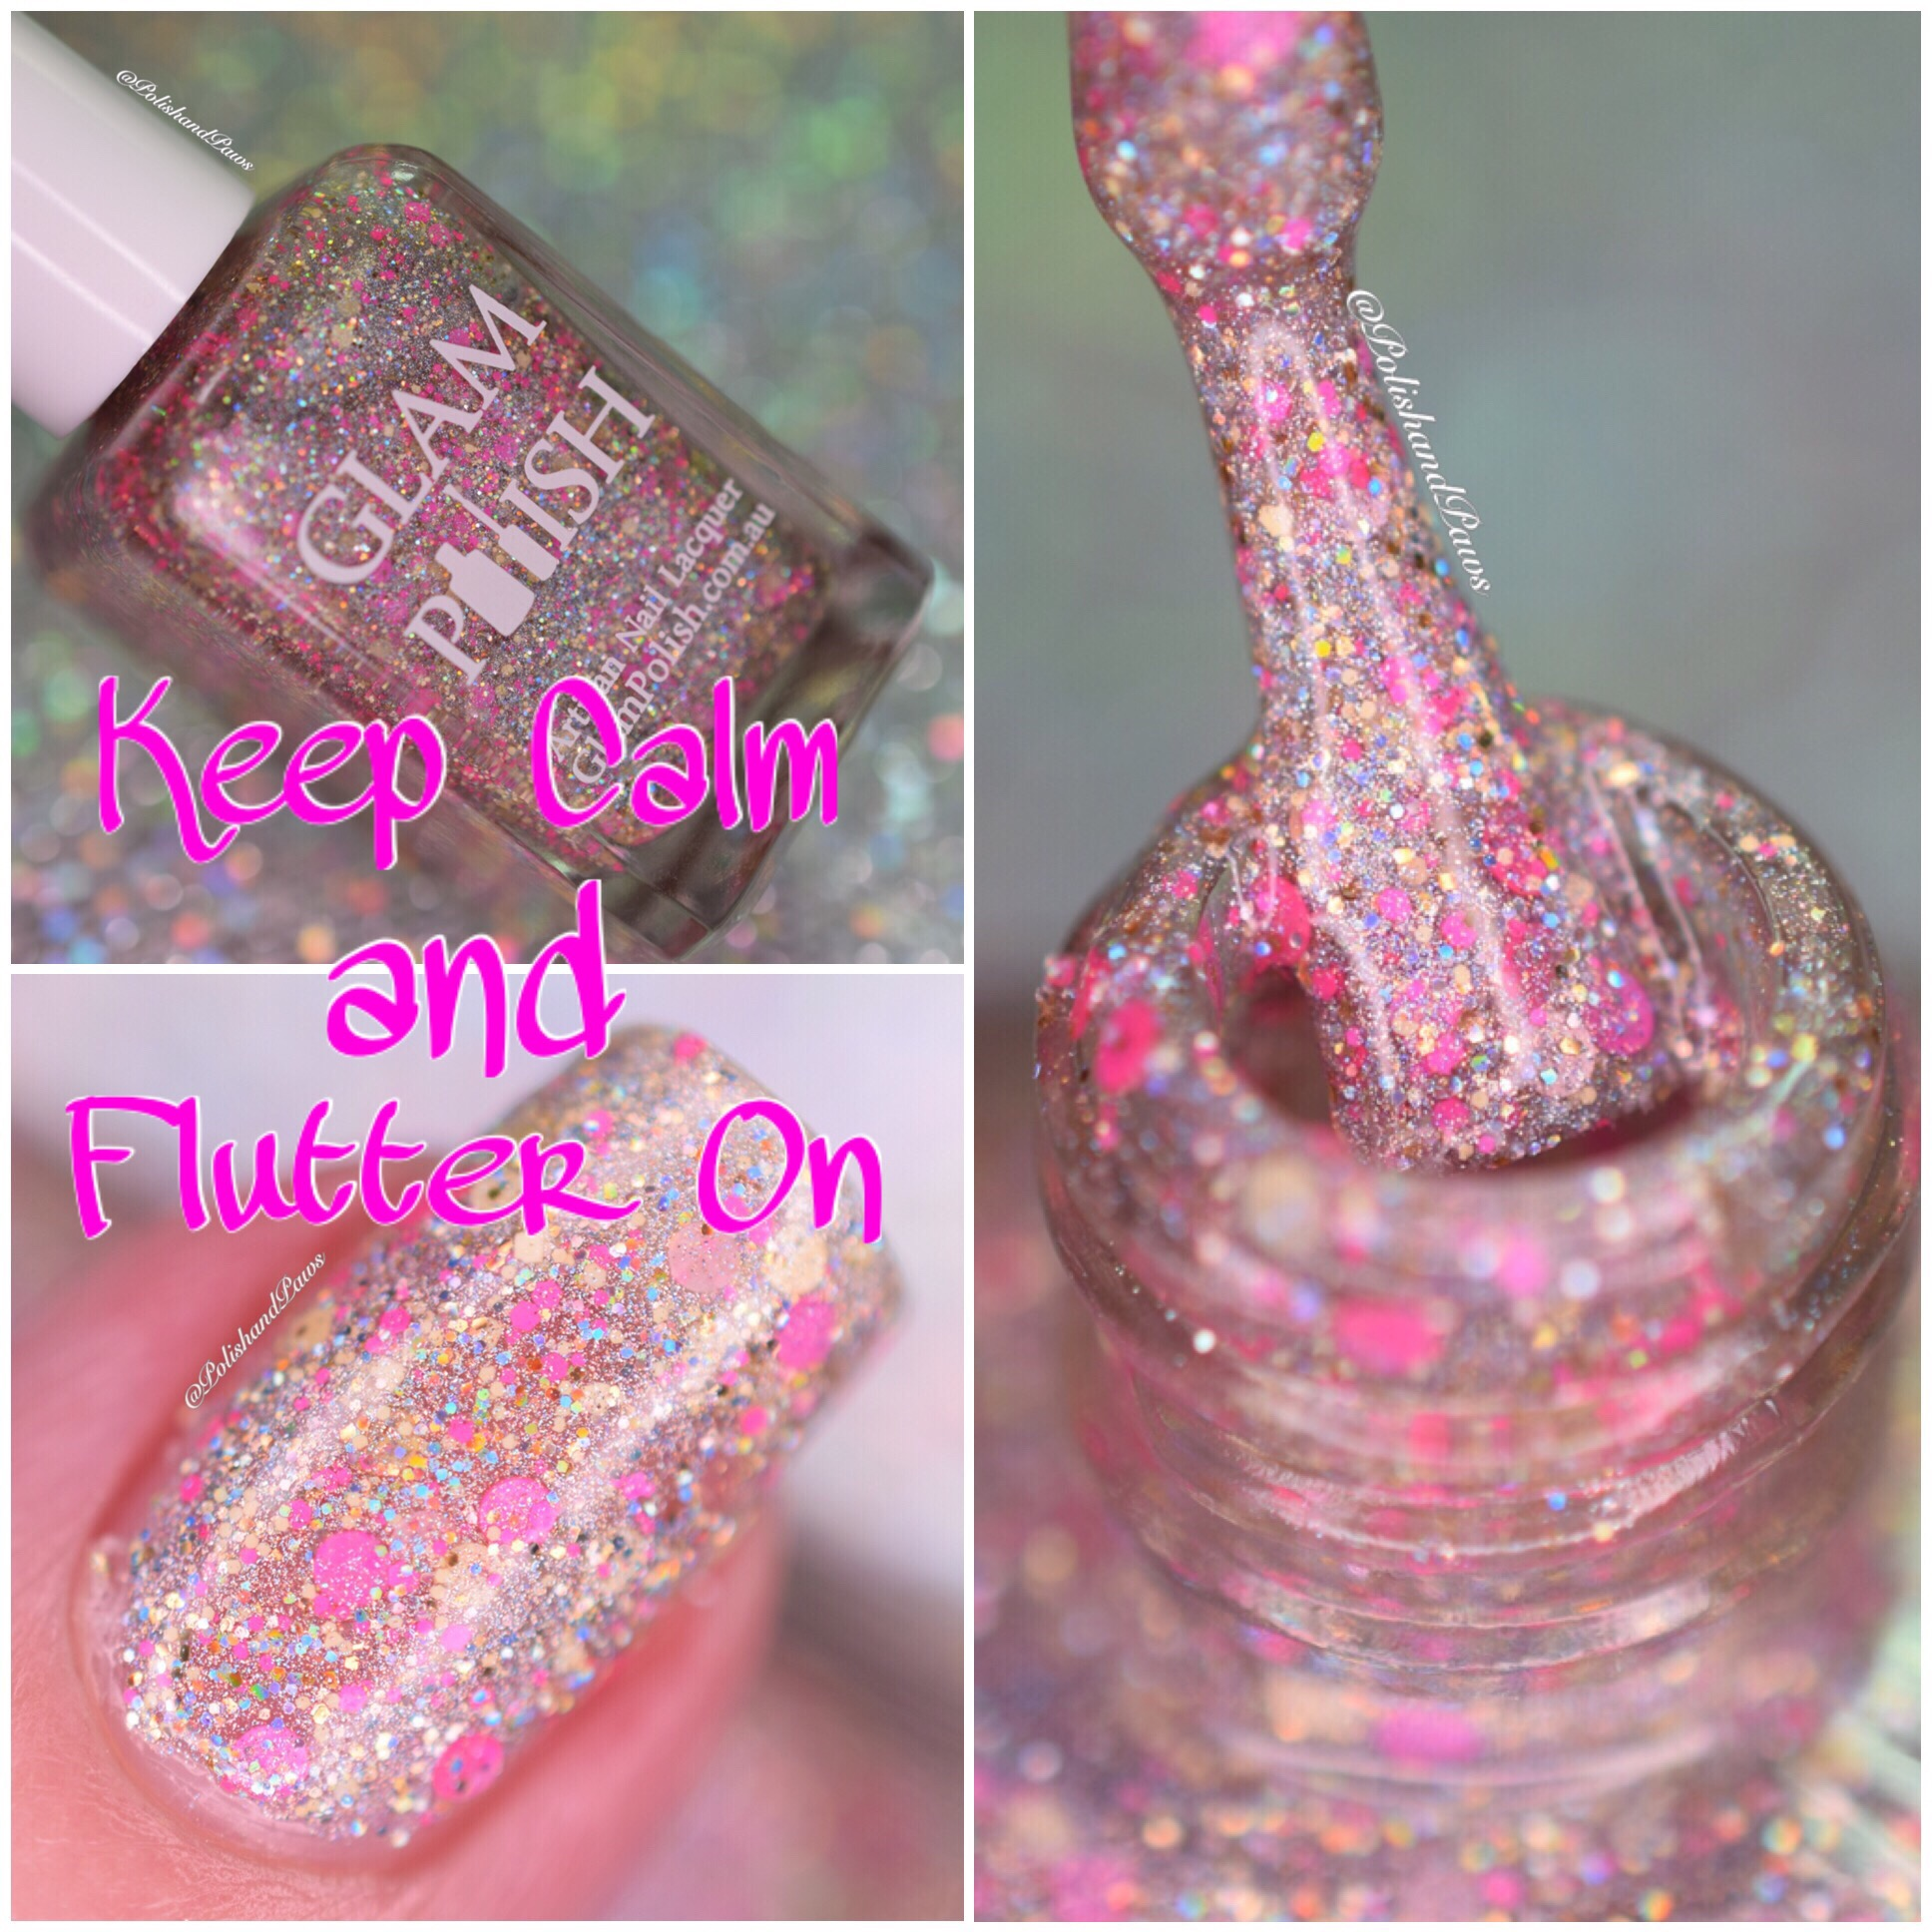 Glam Polish Keep Calm and Flutter On collage